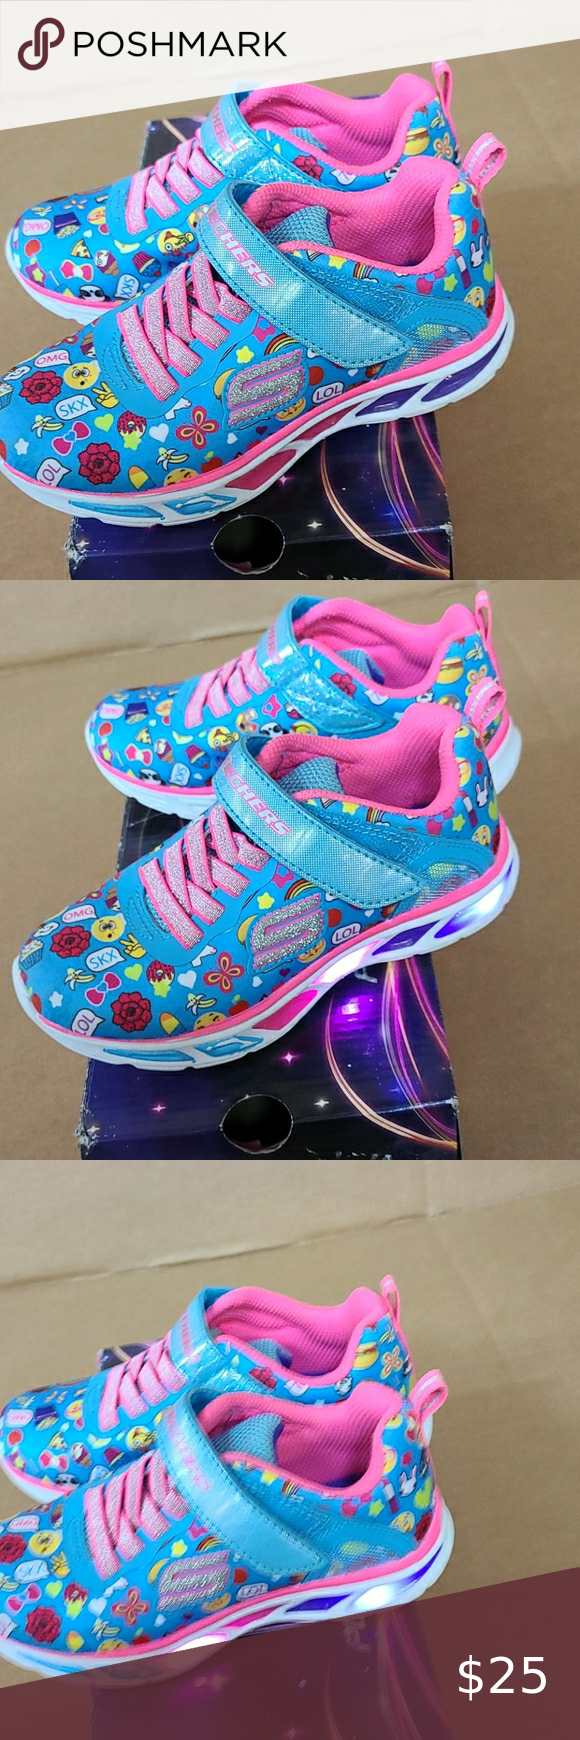 Skechers light up shoes new with slight